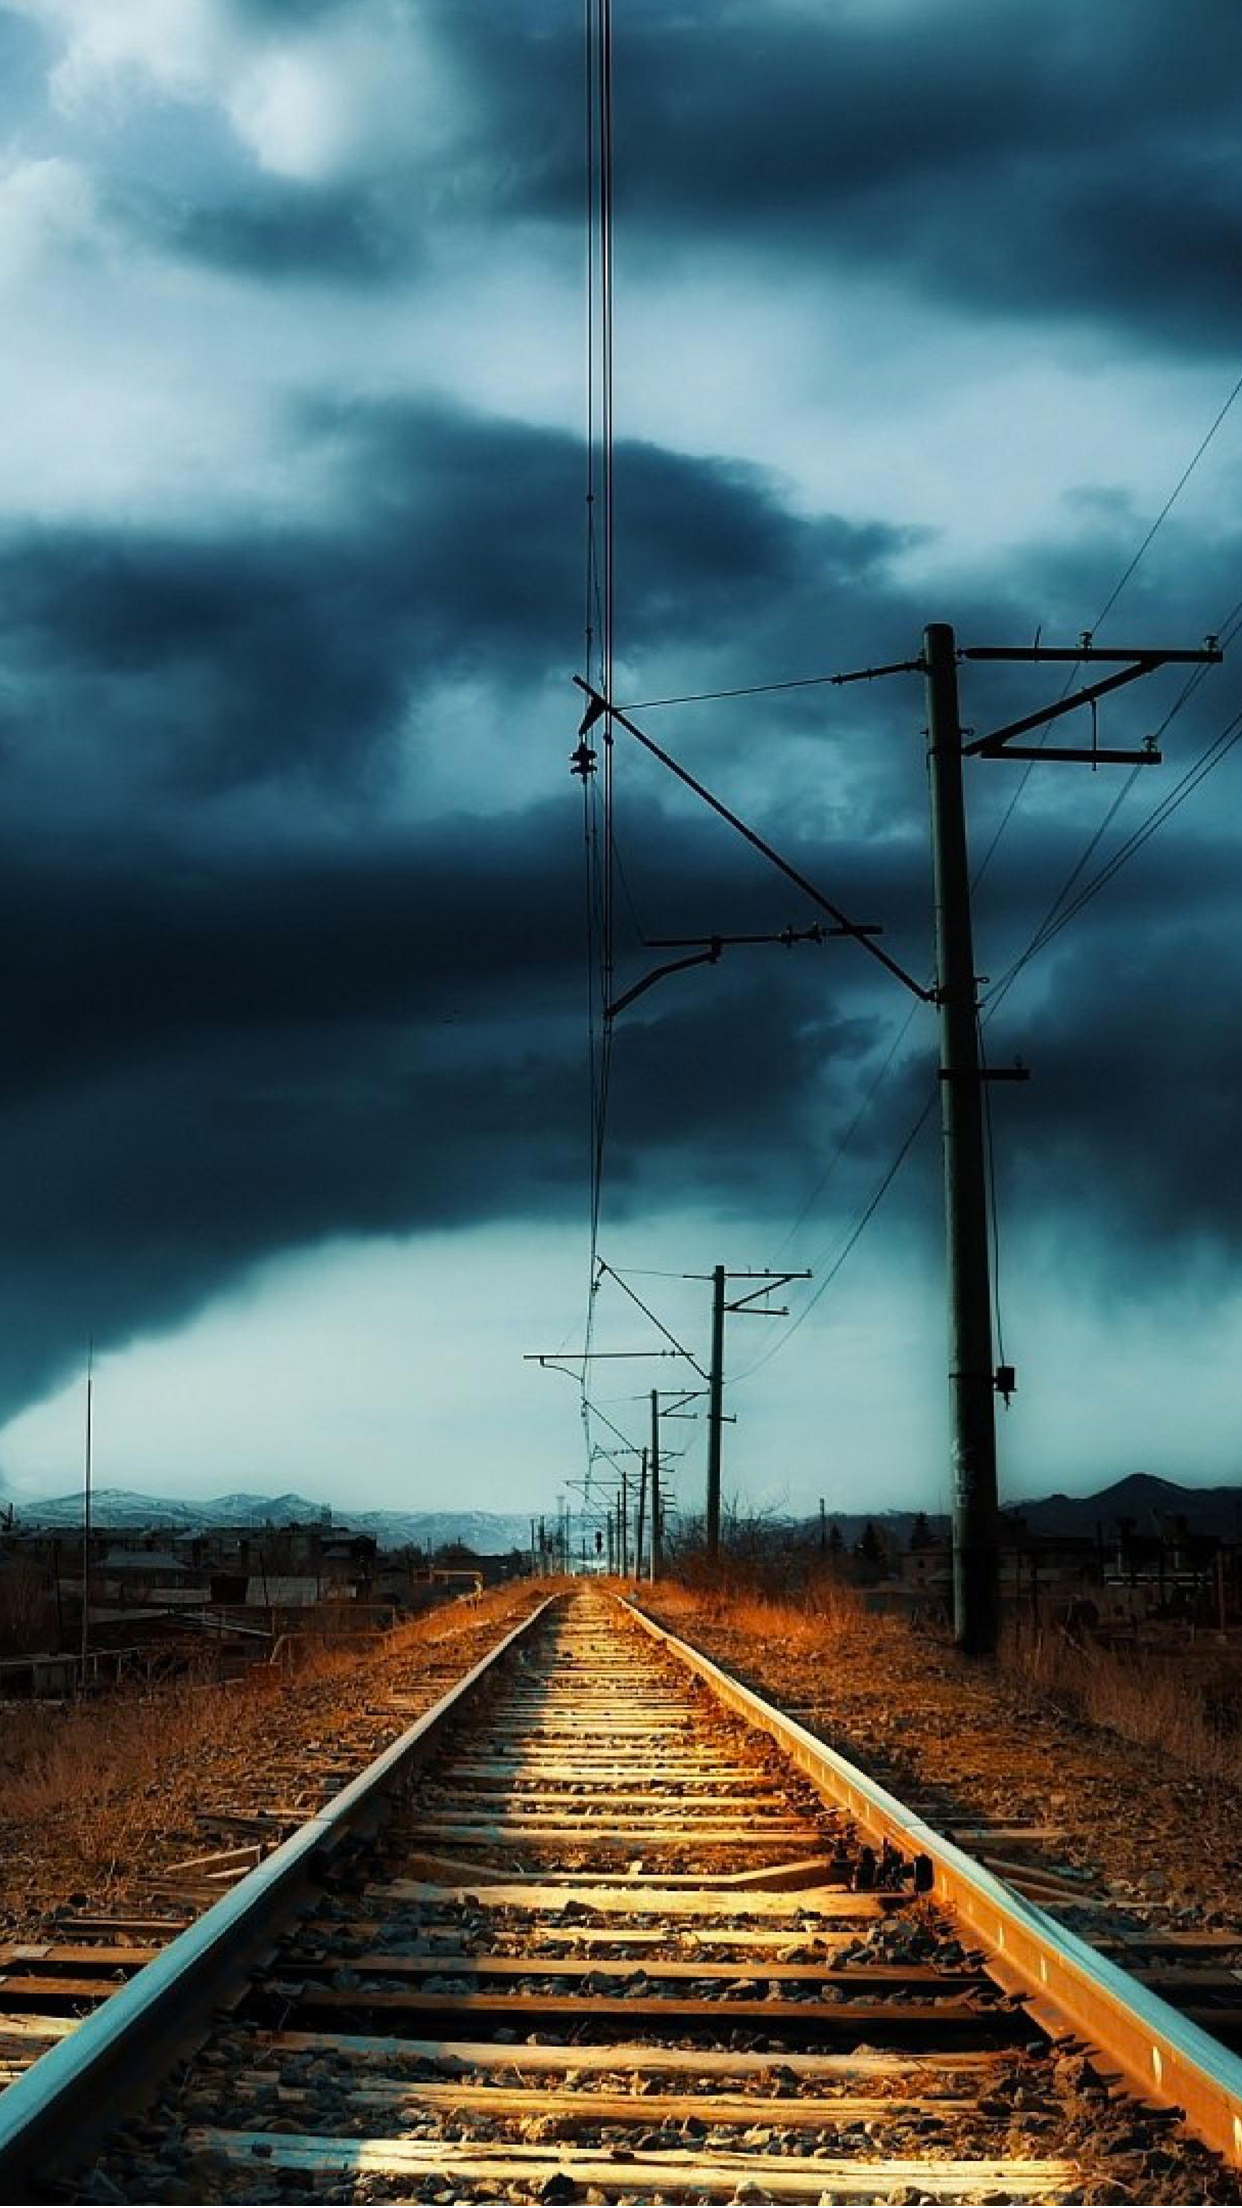 Railway Vintage Wallpaper For Iphone X 8 7 6 Free